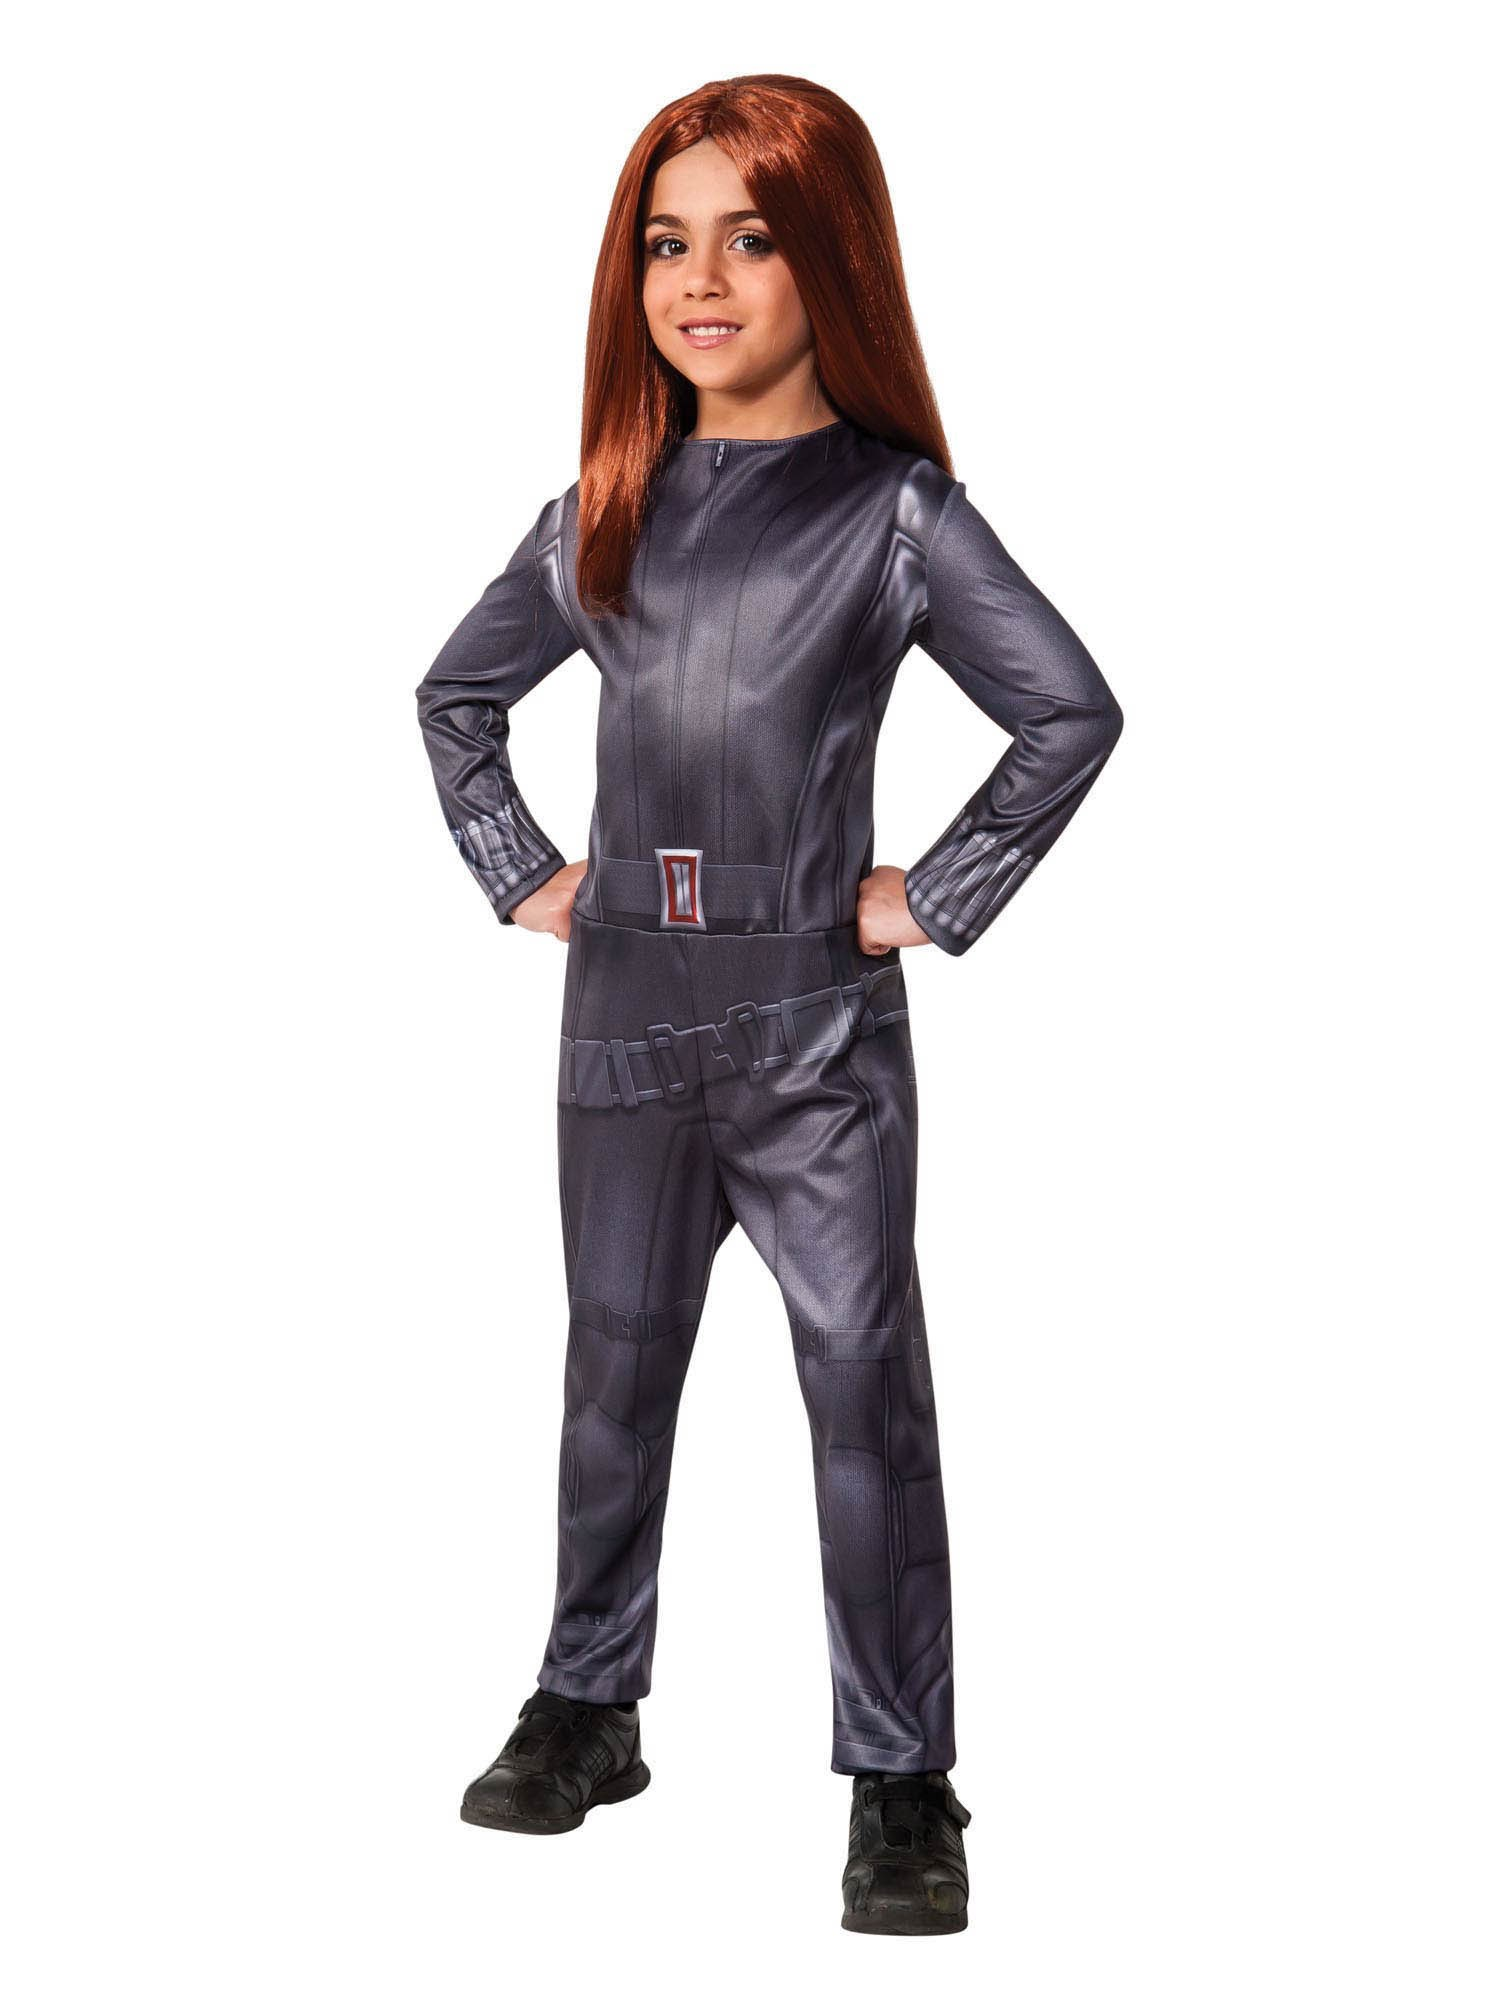 Captain America Winter Soldier - Black Widow Child Costume